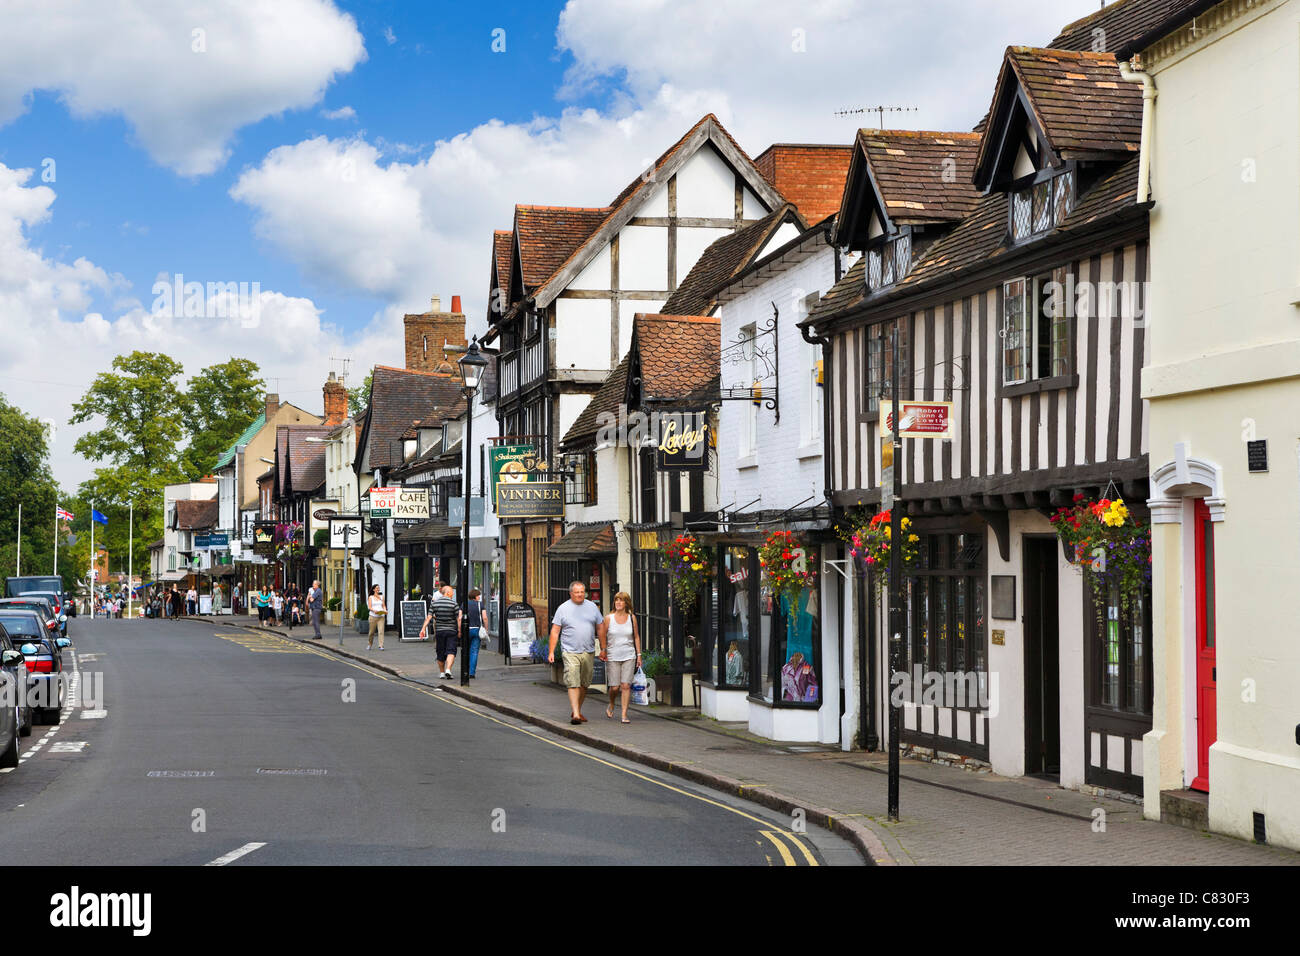 shops on sheep street in the historic centre stratford upon avon stock photo 39404263 alamy. Black Bedroom Furniture Sets. Home Design Ideas